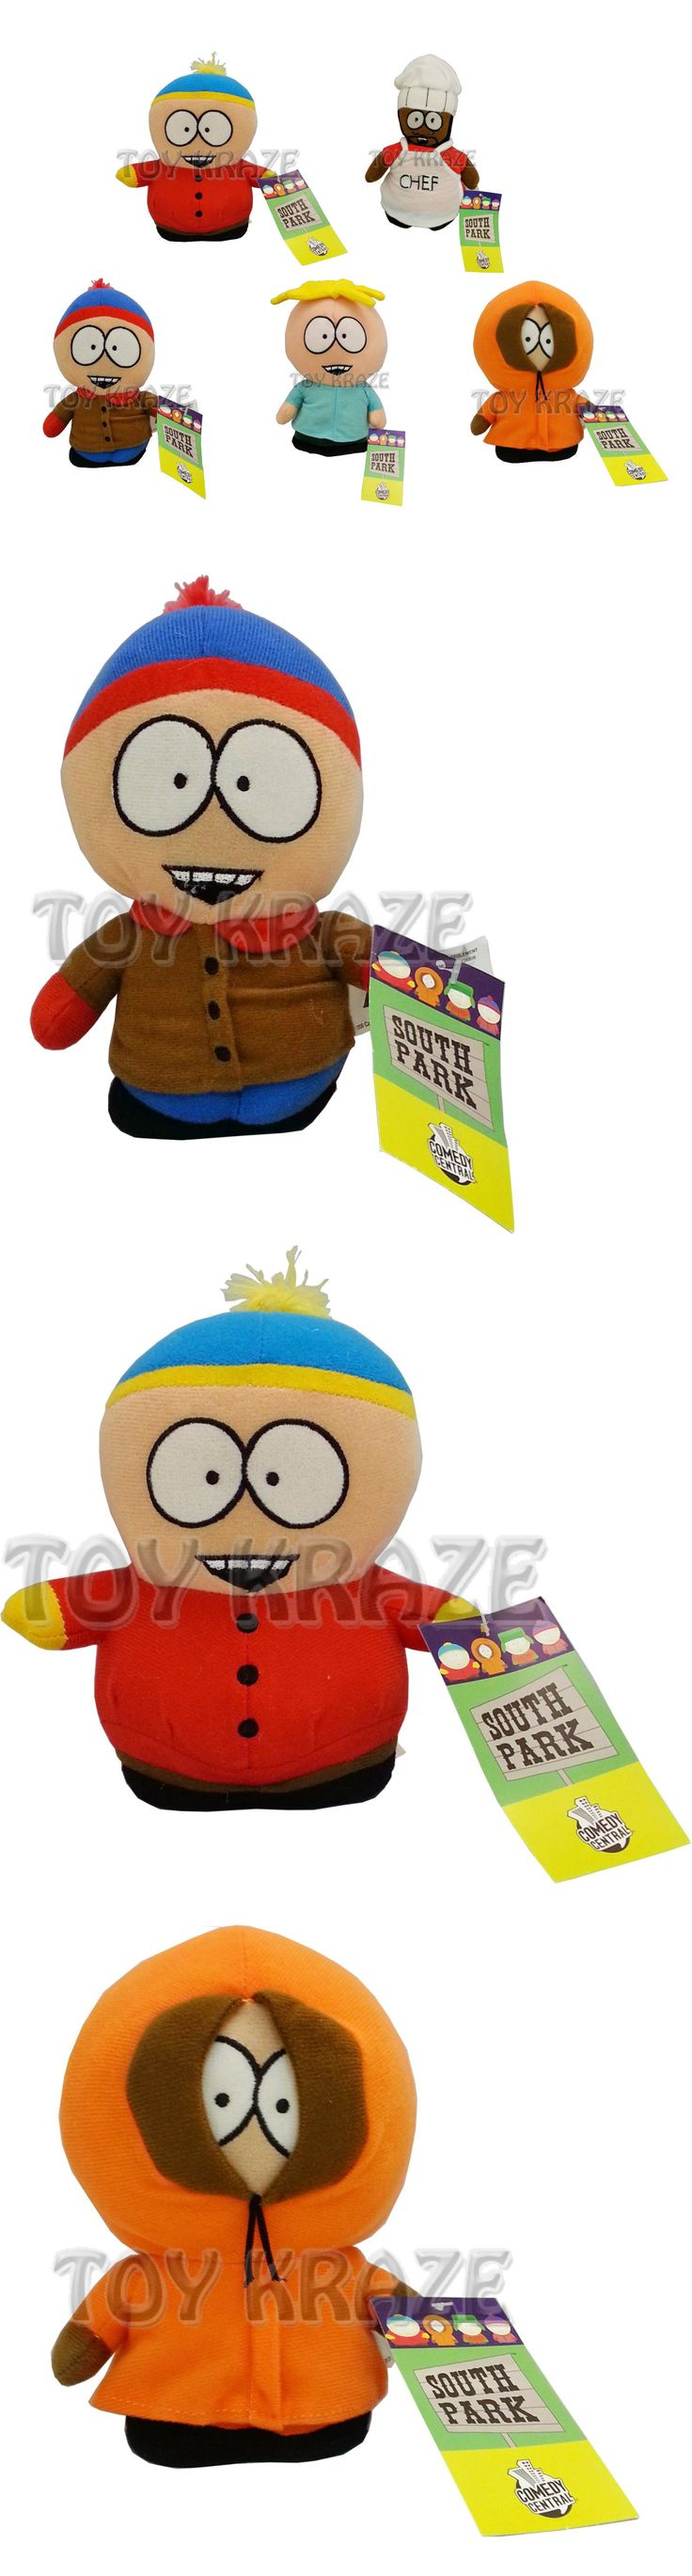 South Park 20918: South Park 5 Pc Plush Set! Butters Stan Kenny Cartman Chef Small Doll 6 -7 Nwt -> BUY IT NOW ONLY: $59.99 on eBay!